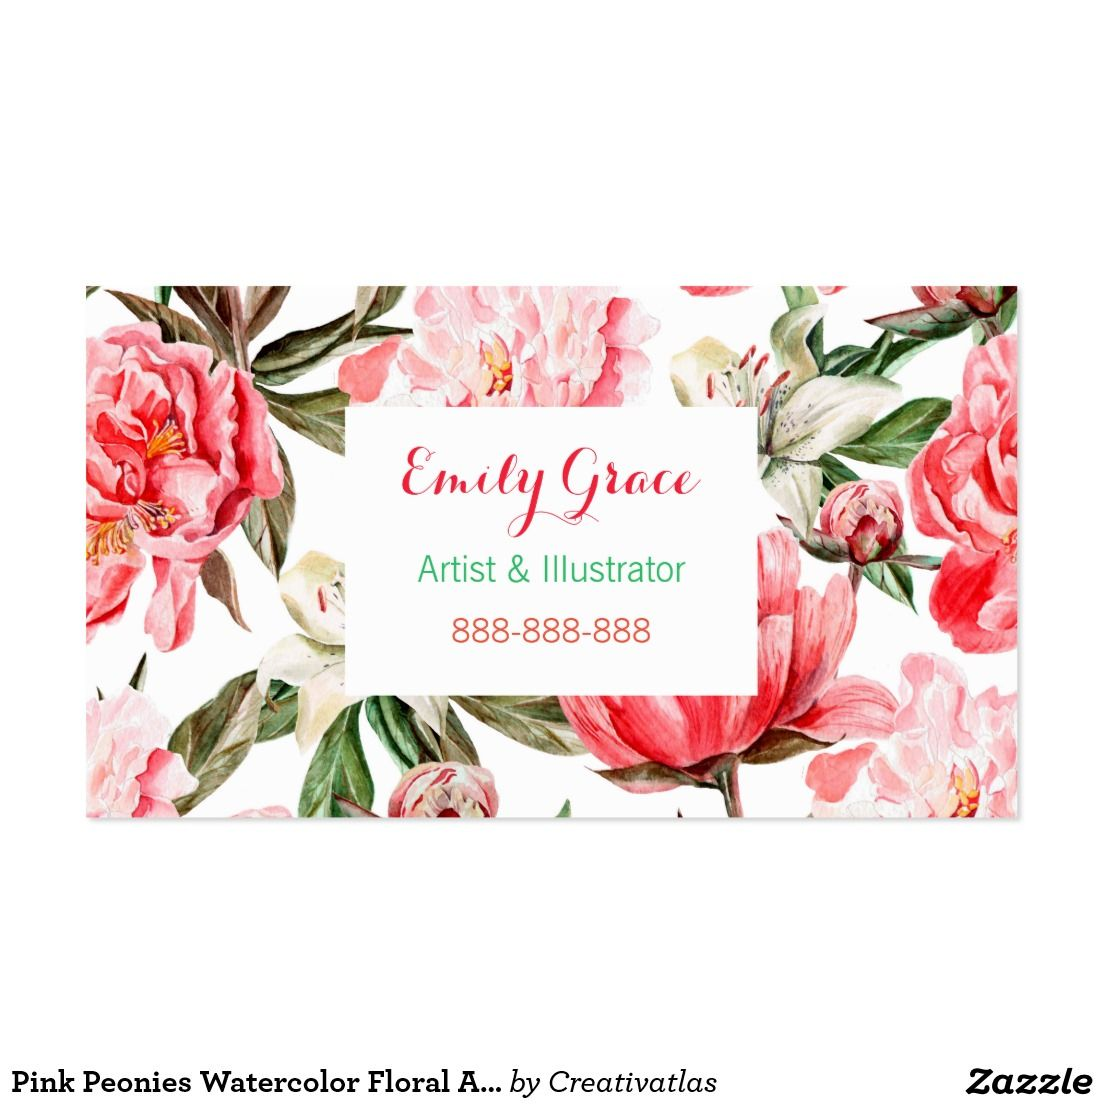 Pink Peonies Watercolor Floral Artist Designer Business Card ...